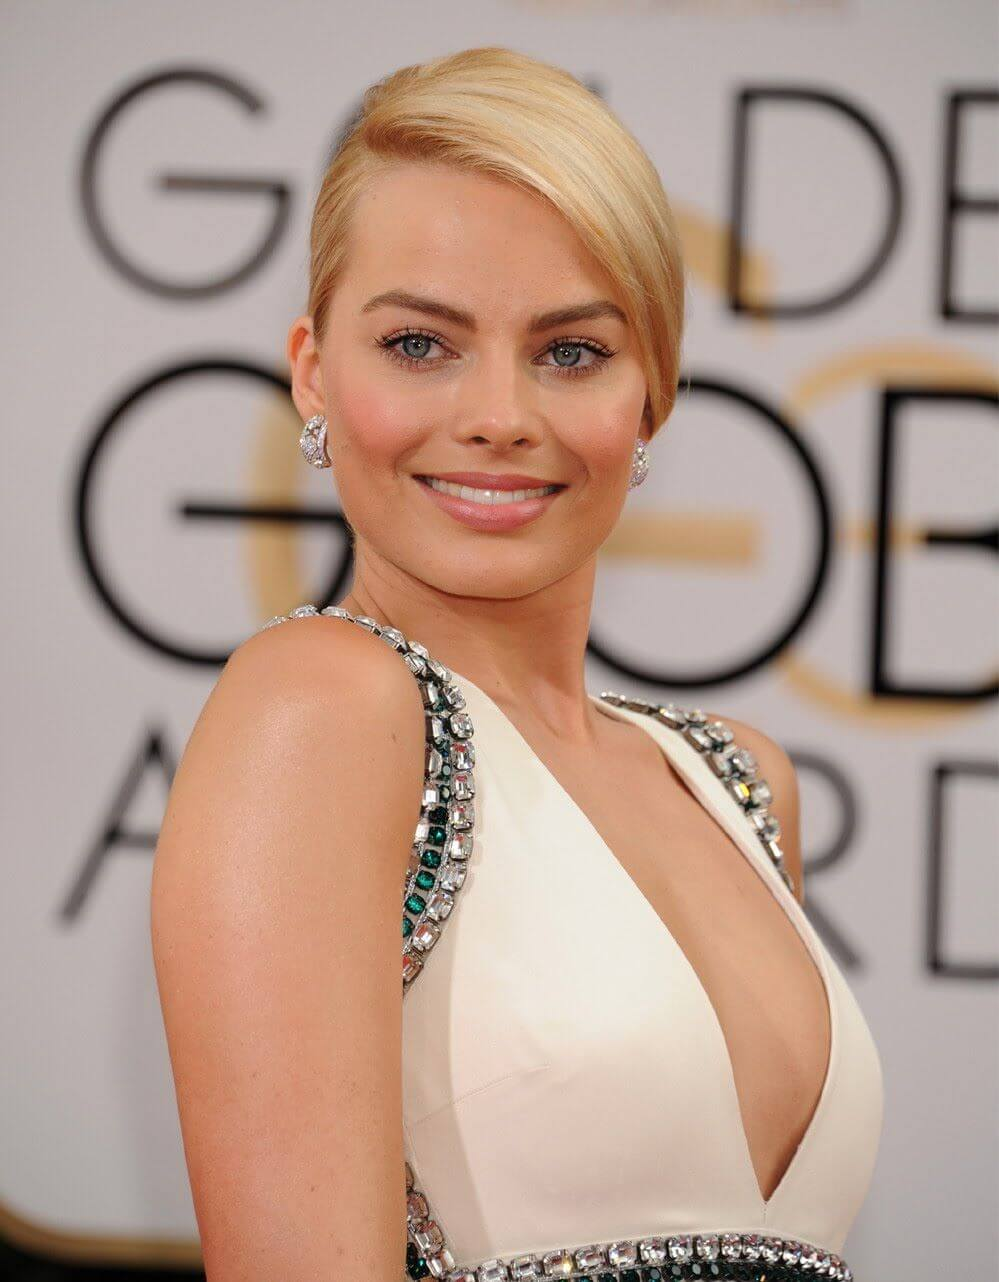 margot robbie hot side pictures